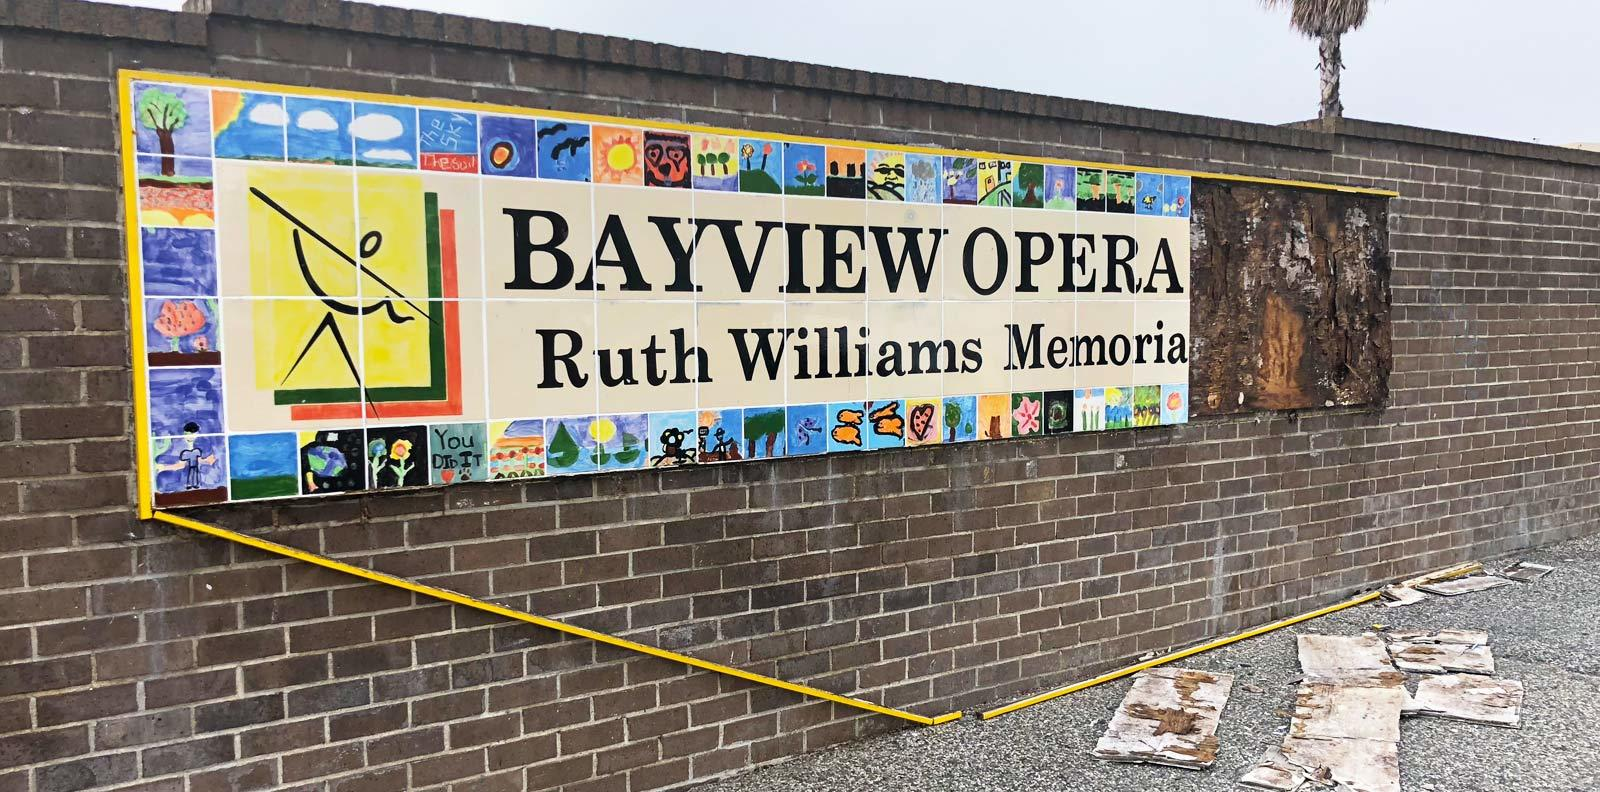 Broken Ruth Williams Memorial Theatre tile sign